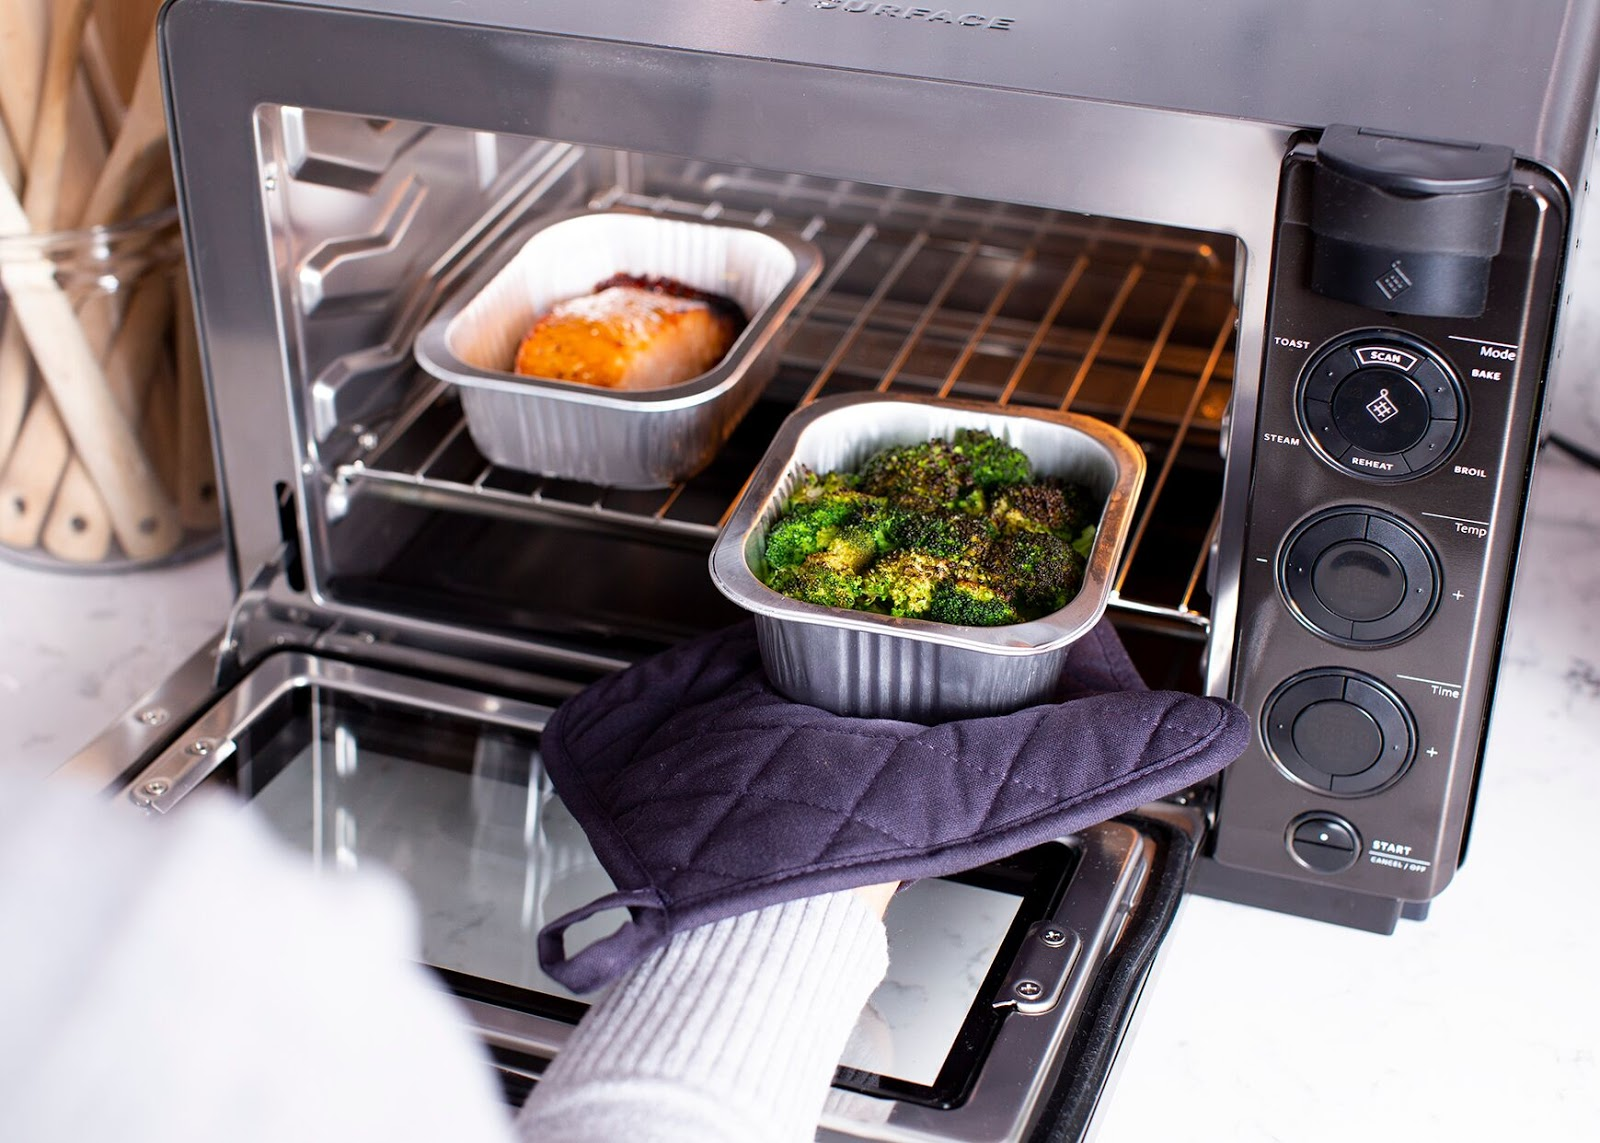 The Heat Is On How To Choose The Best Countertop Oven